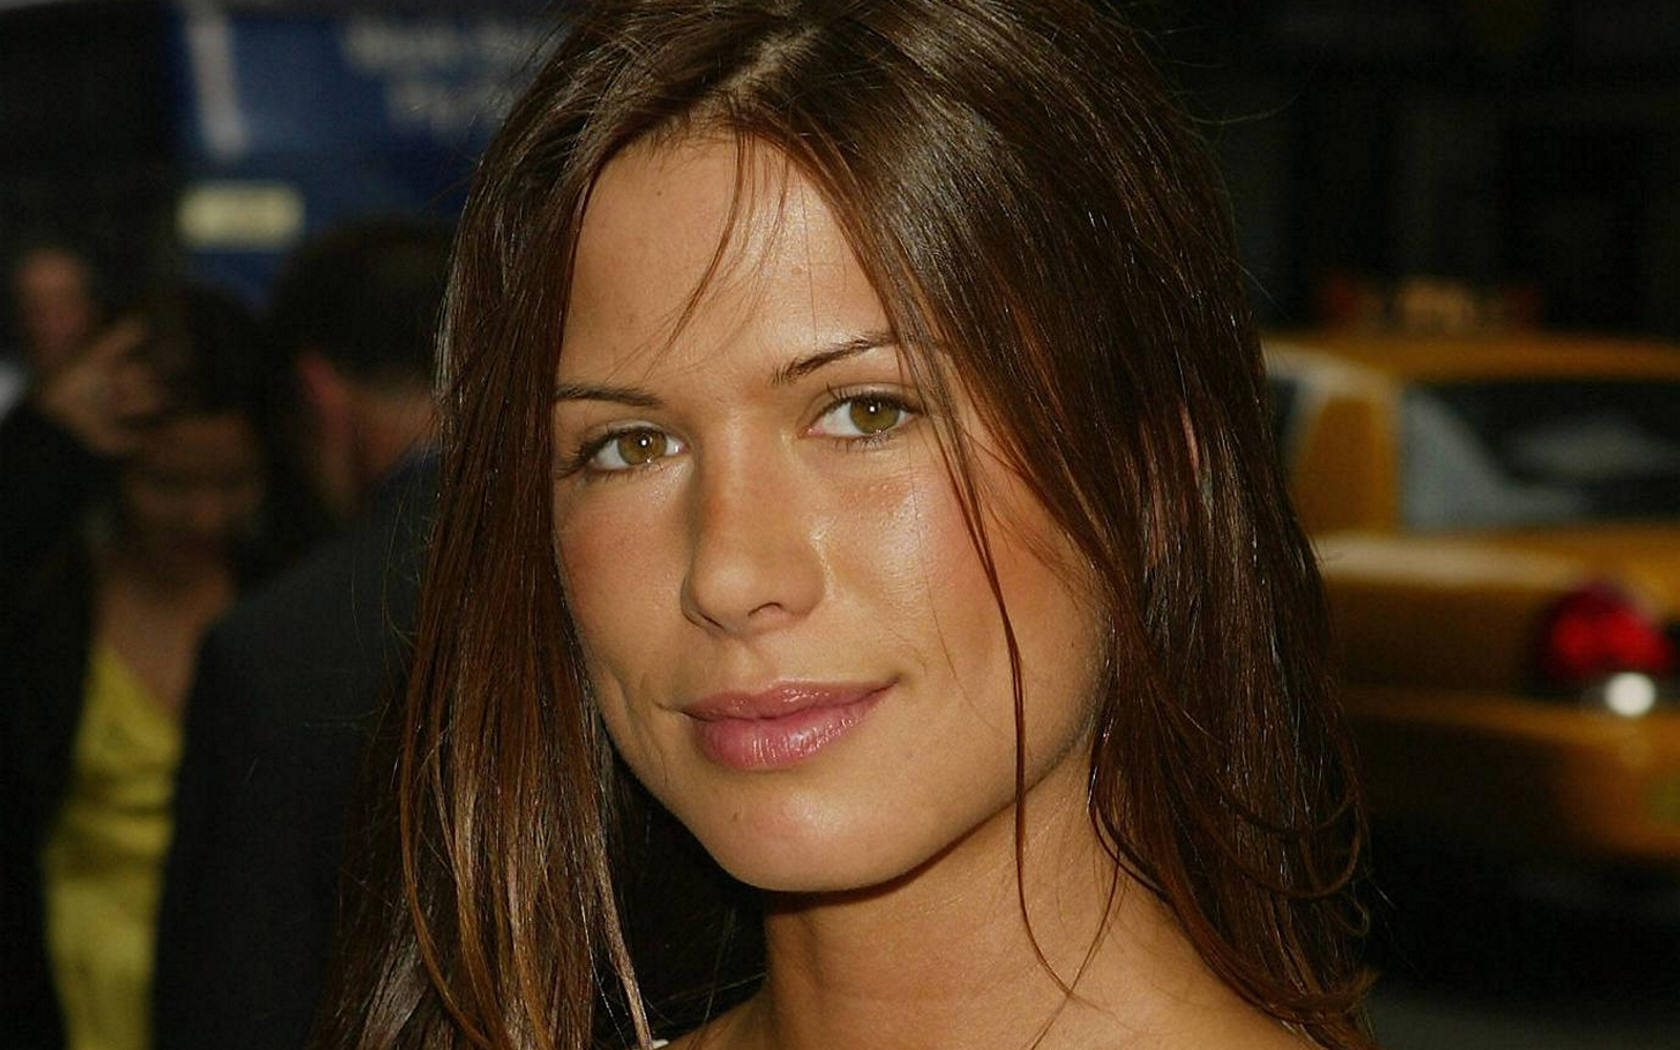 Pictures Rhona Mitra nude (56 photo), Topless, Is a cute, Instagram, bra 2019